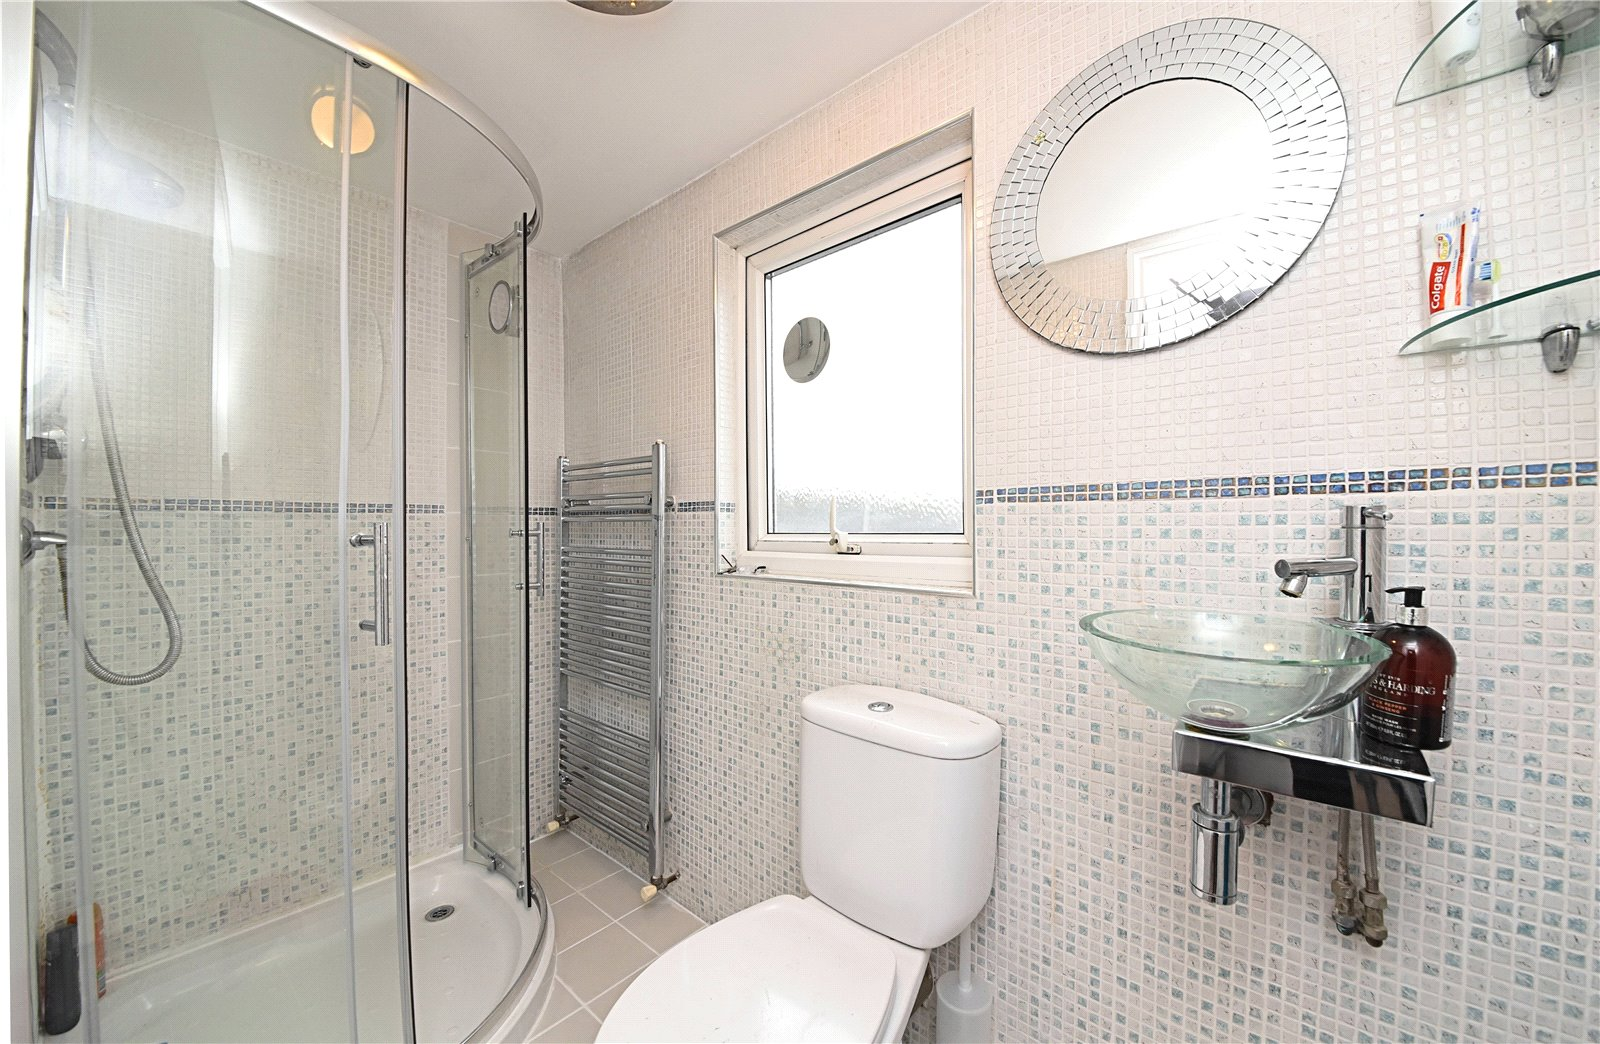 4 bed house for sale in Finchley, N3 2AR 5